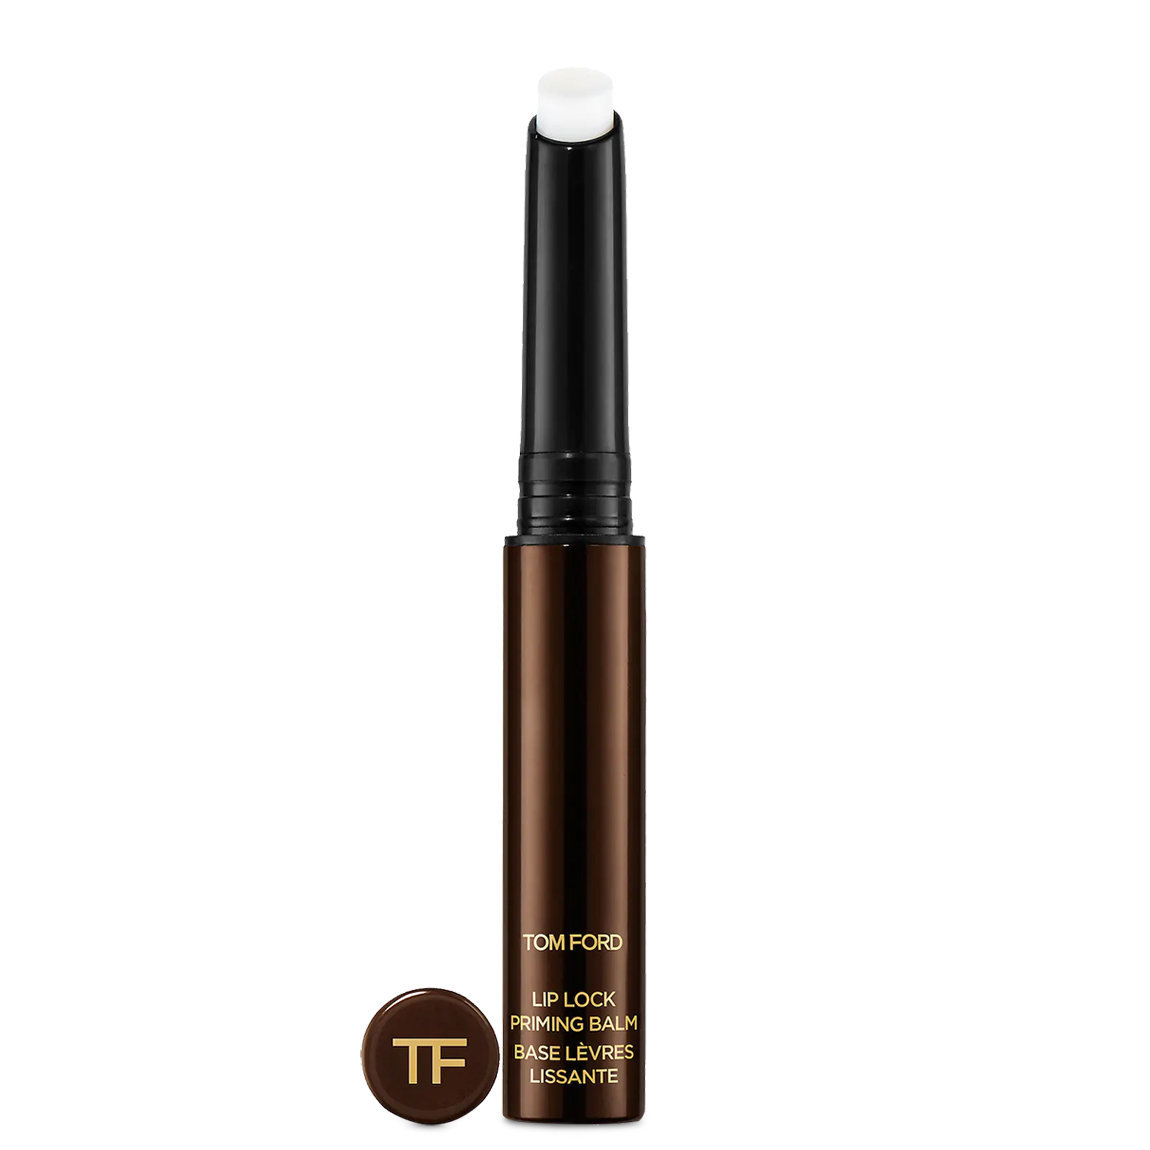 TOM FORD Lip Lock Priming Balm alternative view 1 - product swatch.